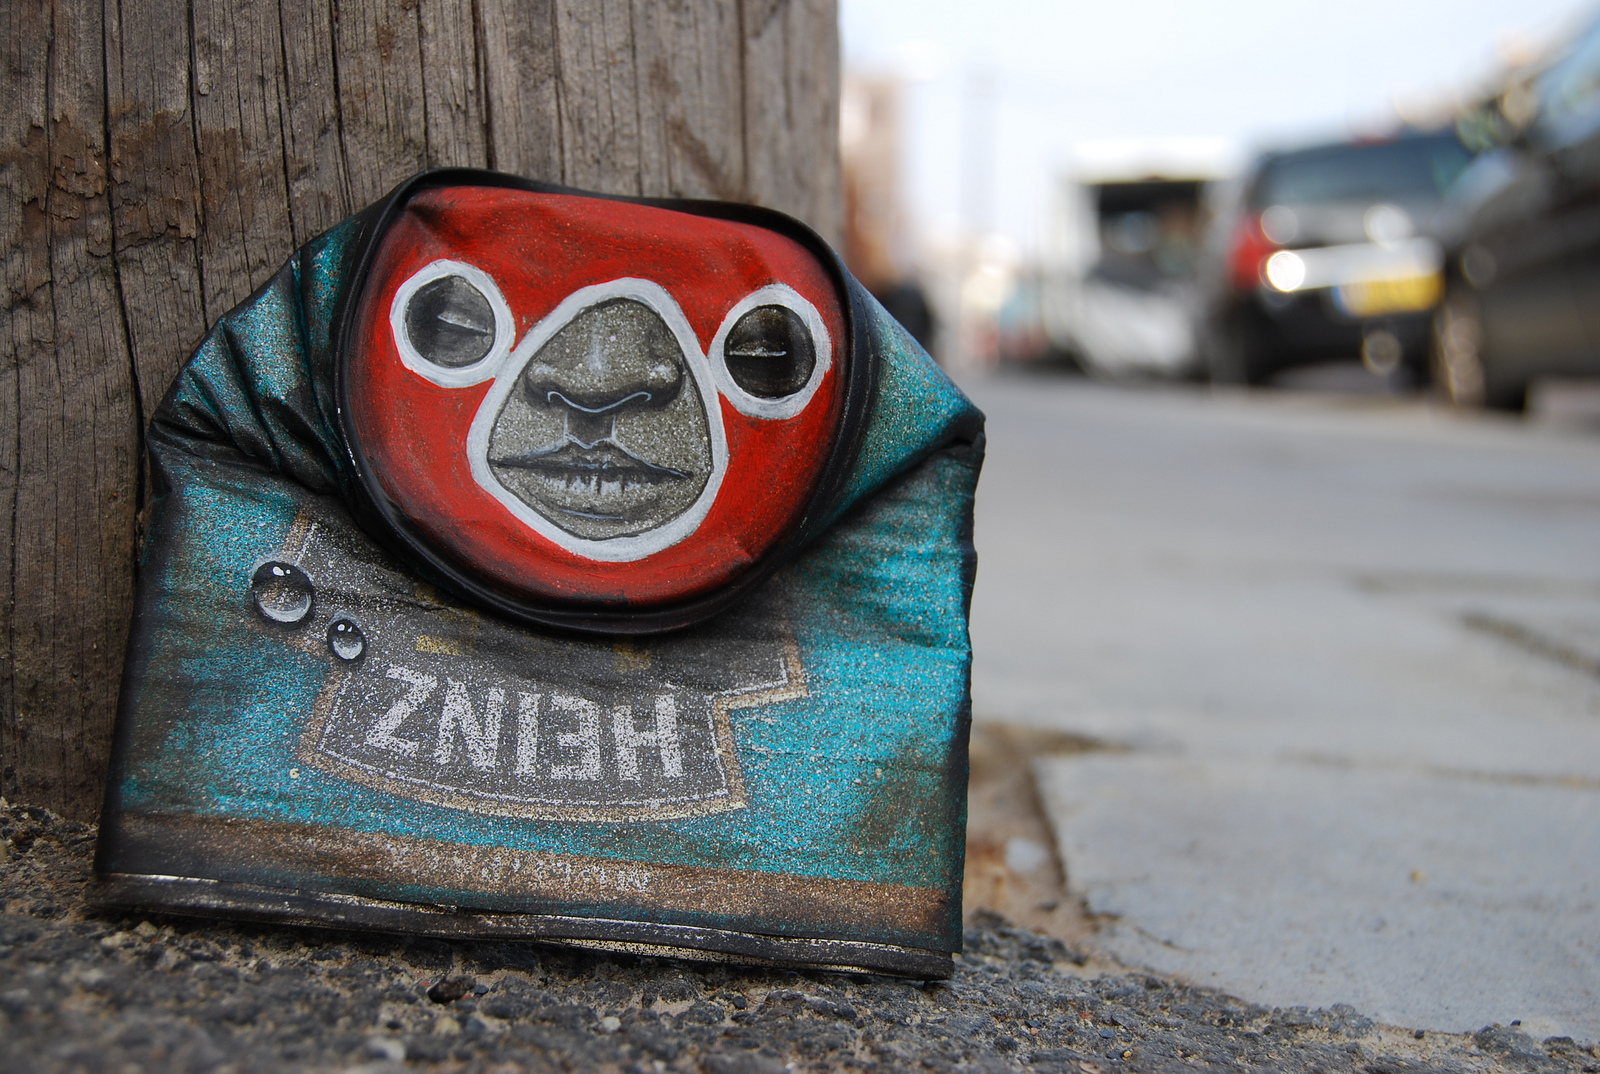 My Dog Sighs specializes in making art out of discarded products